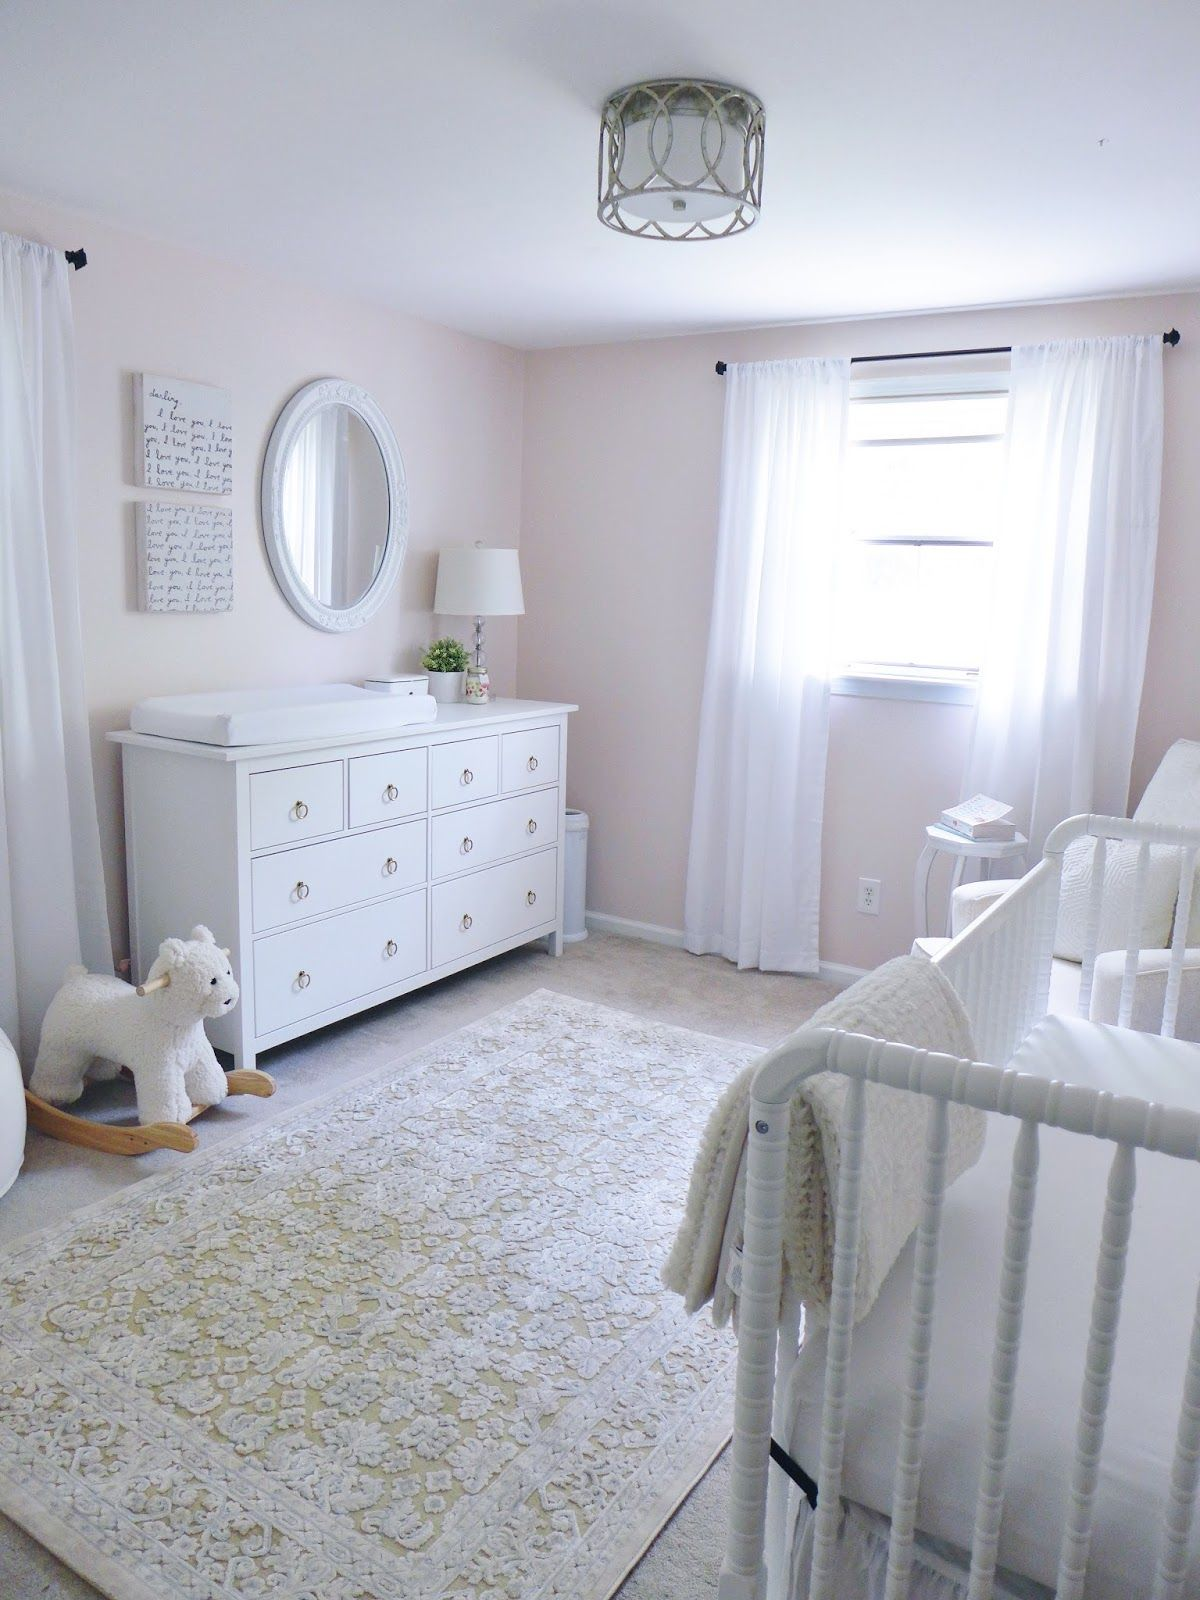 You Are Never Too Young To Live In Style Shop Kids Furniture Decor At Kathy Kuo Home Baby Girl Nursery Room